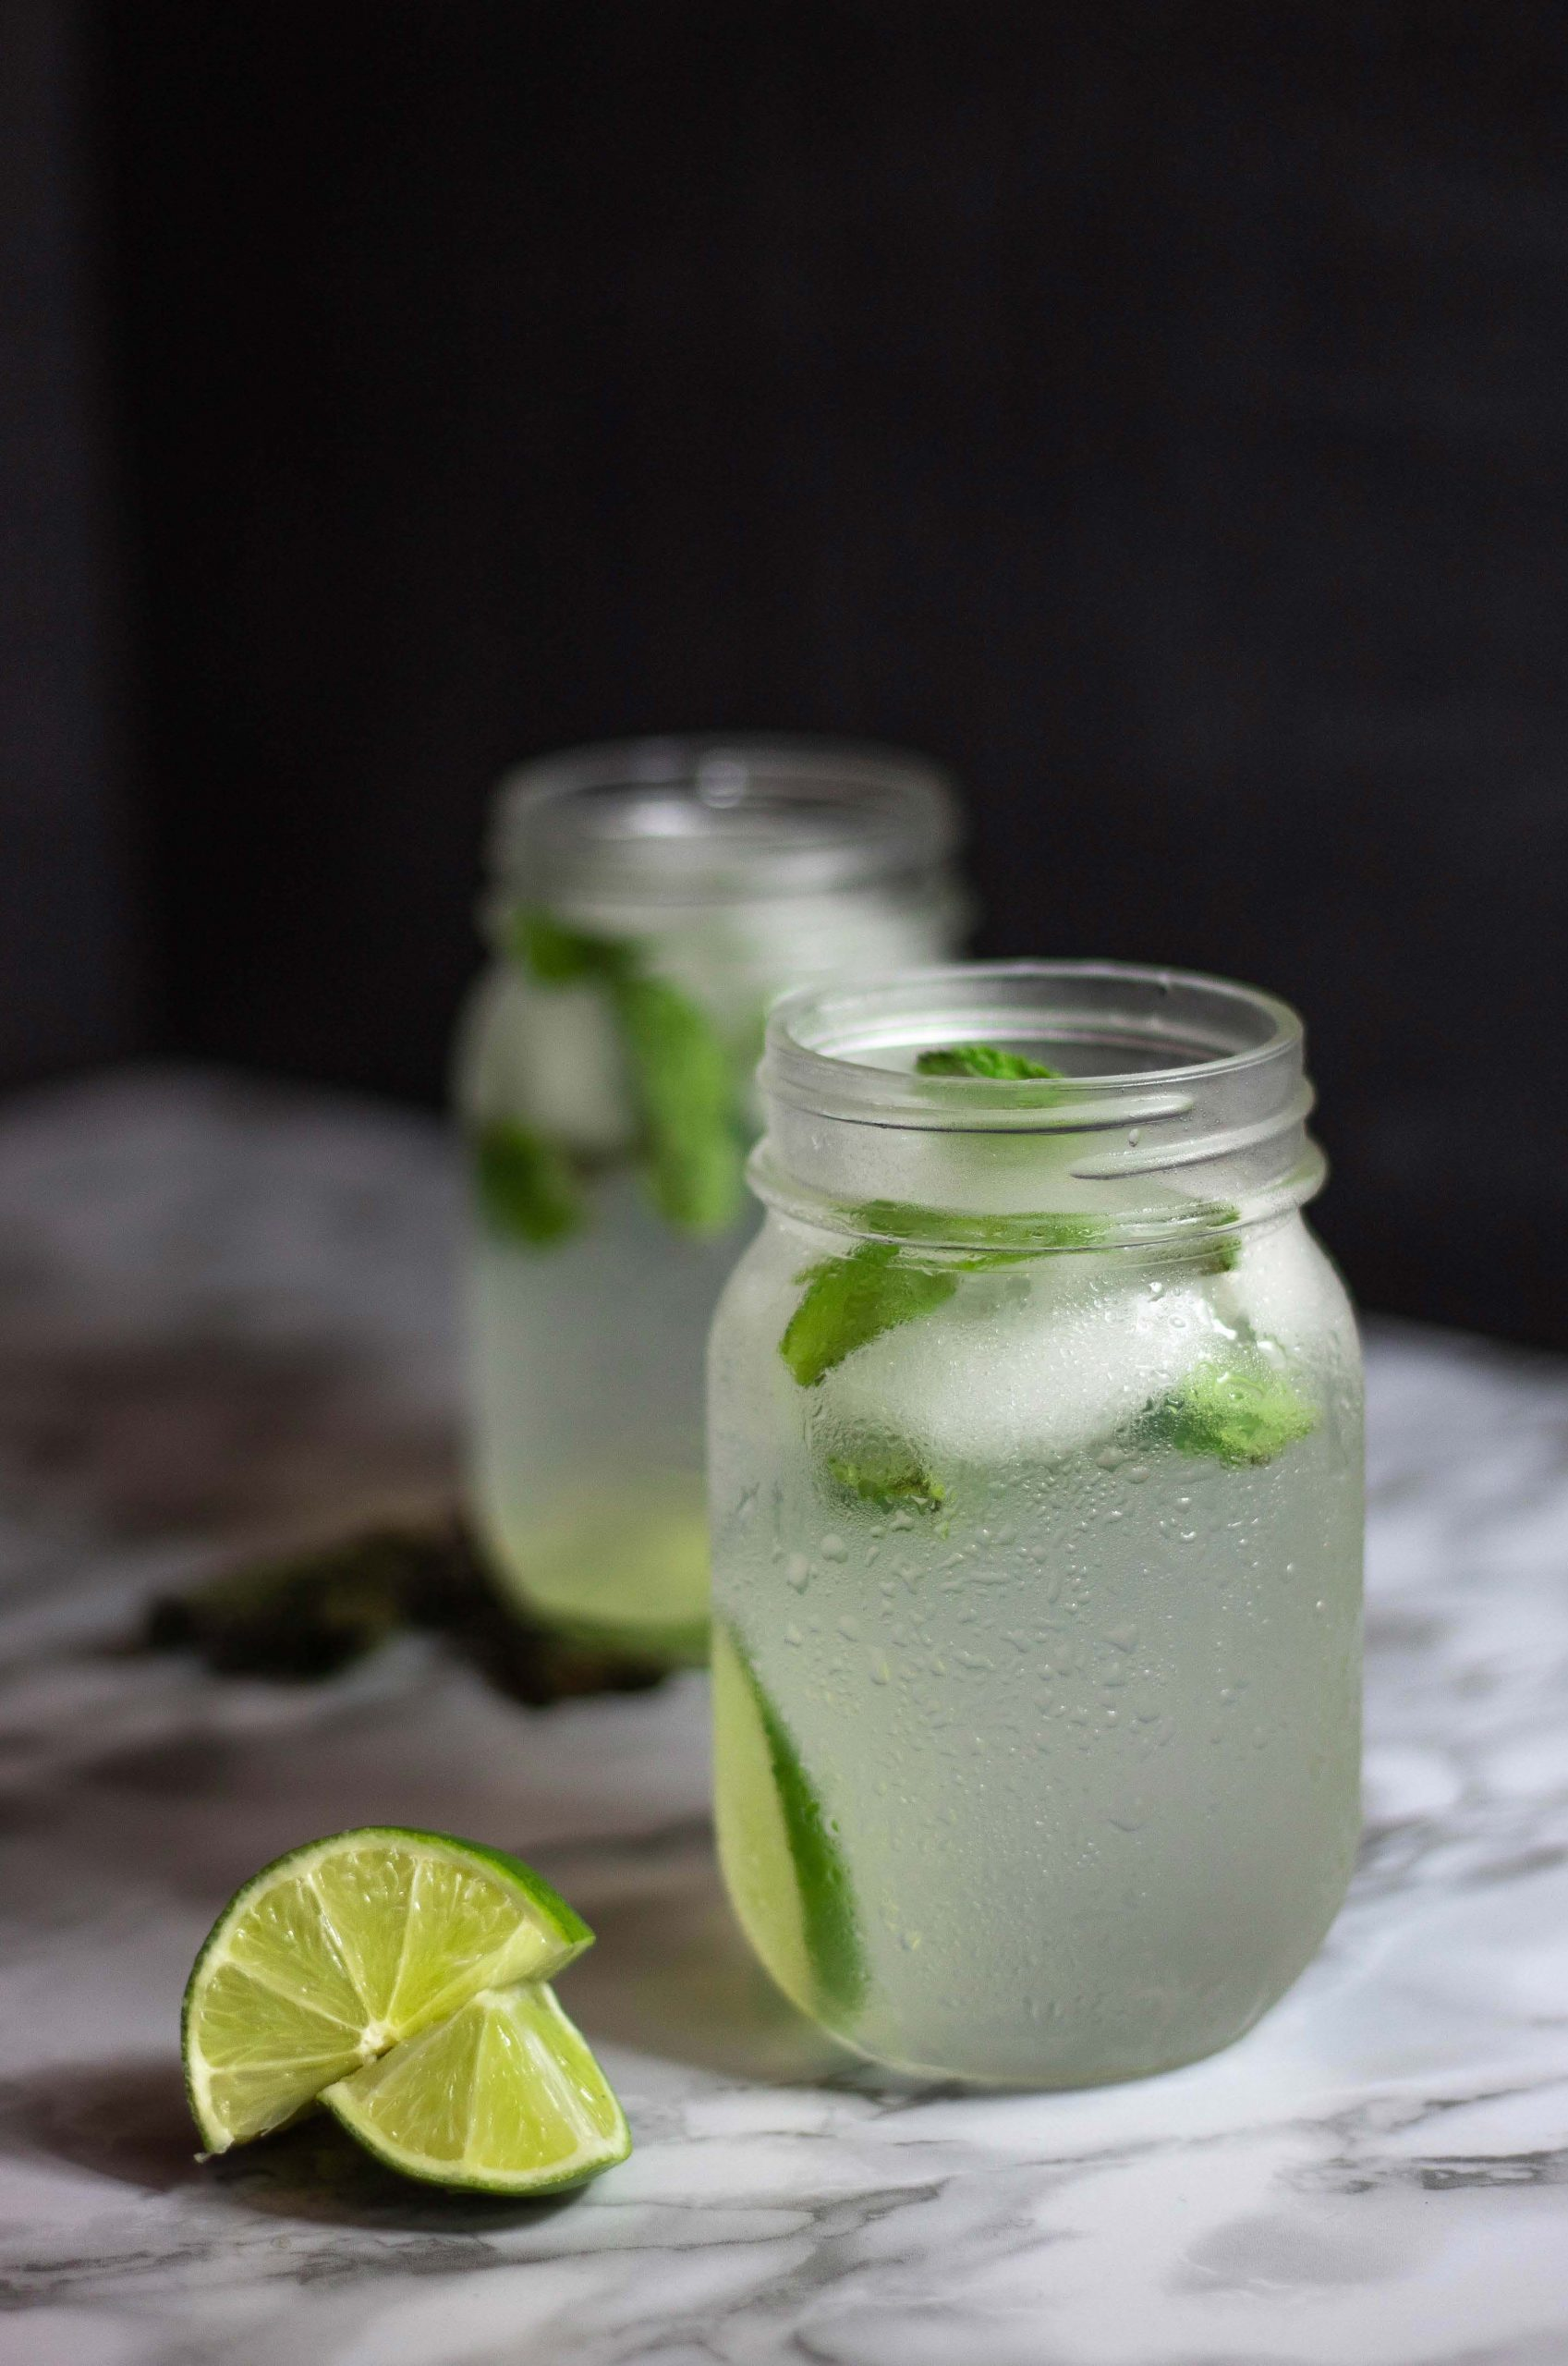 Two glasses of clear beverage garnished with mint and limes